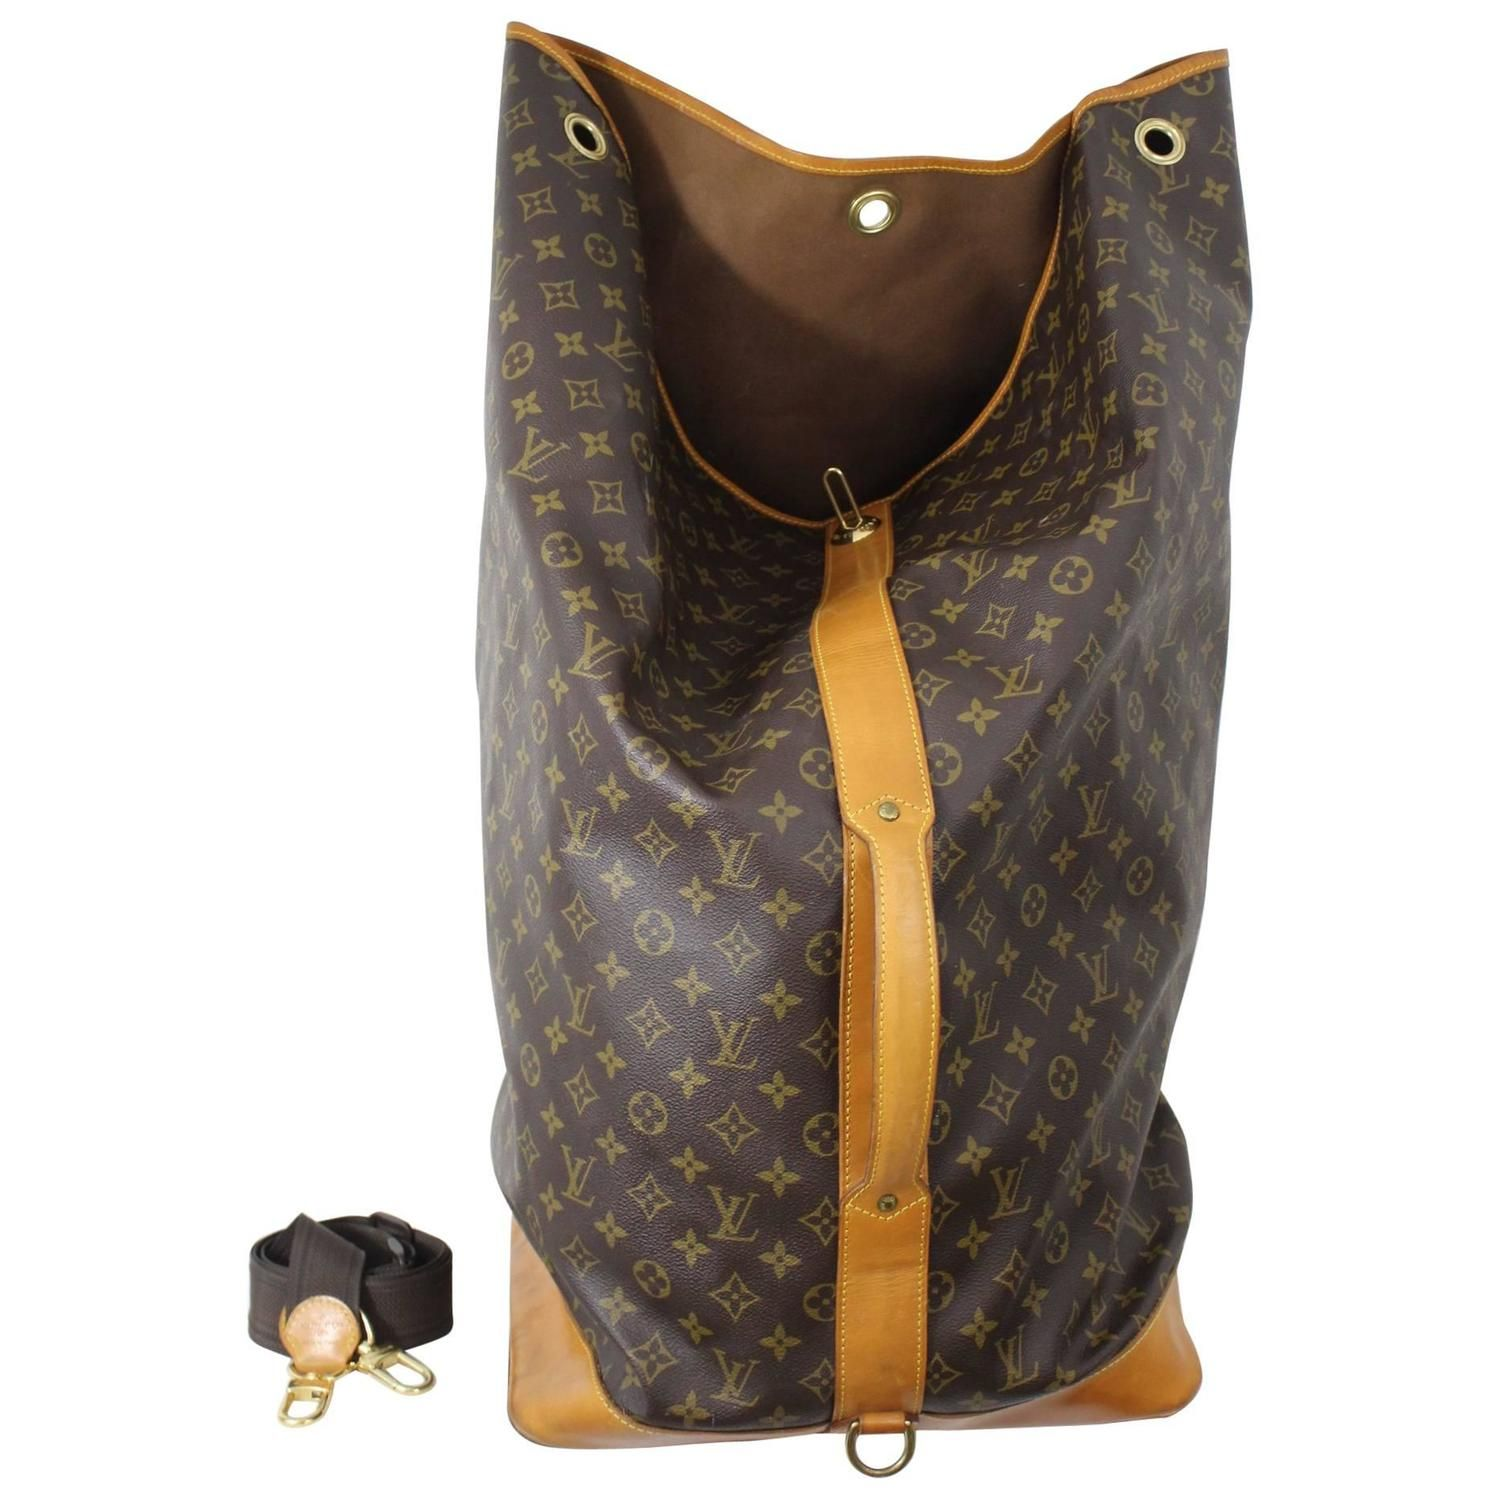 c55e549b5fa68 1996 Louis Vuitton Monogramme Canvas